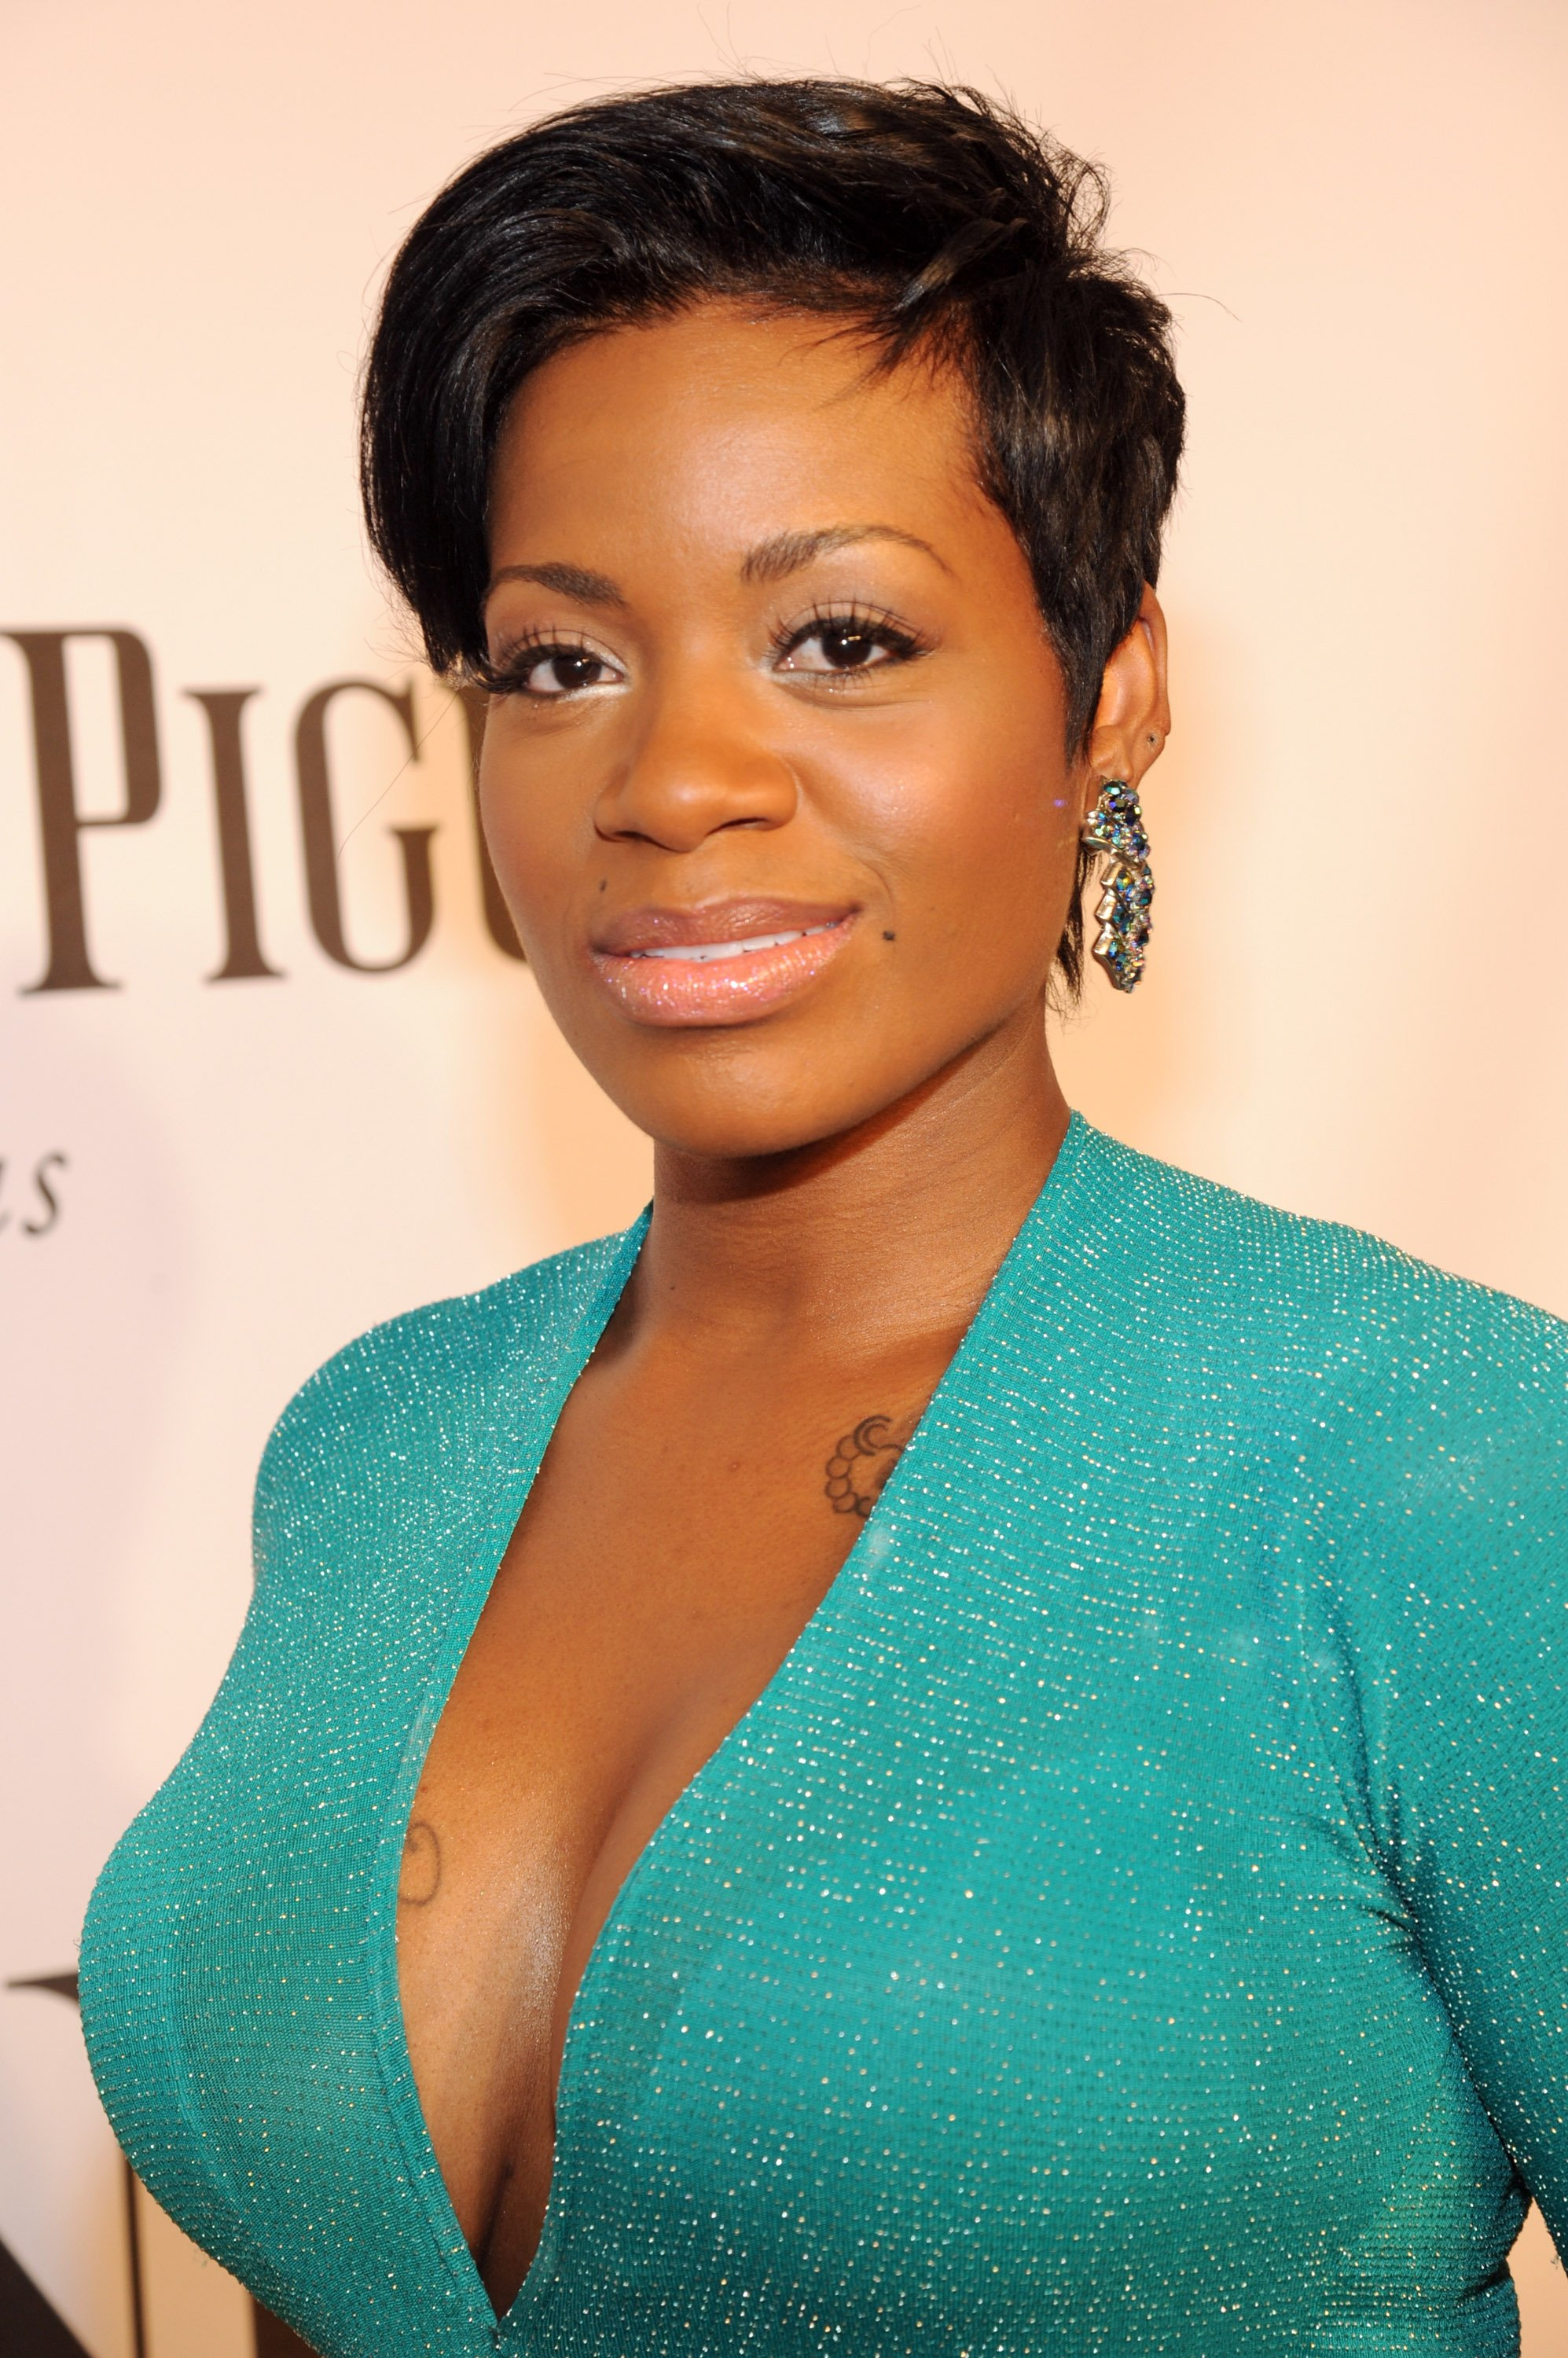 Fantasia Barrino at Radio City Music Hall for the Annual Tony Awards in New York City on June 8, 2014. | Photo: Getty Images